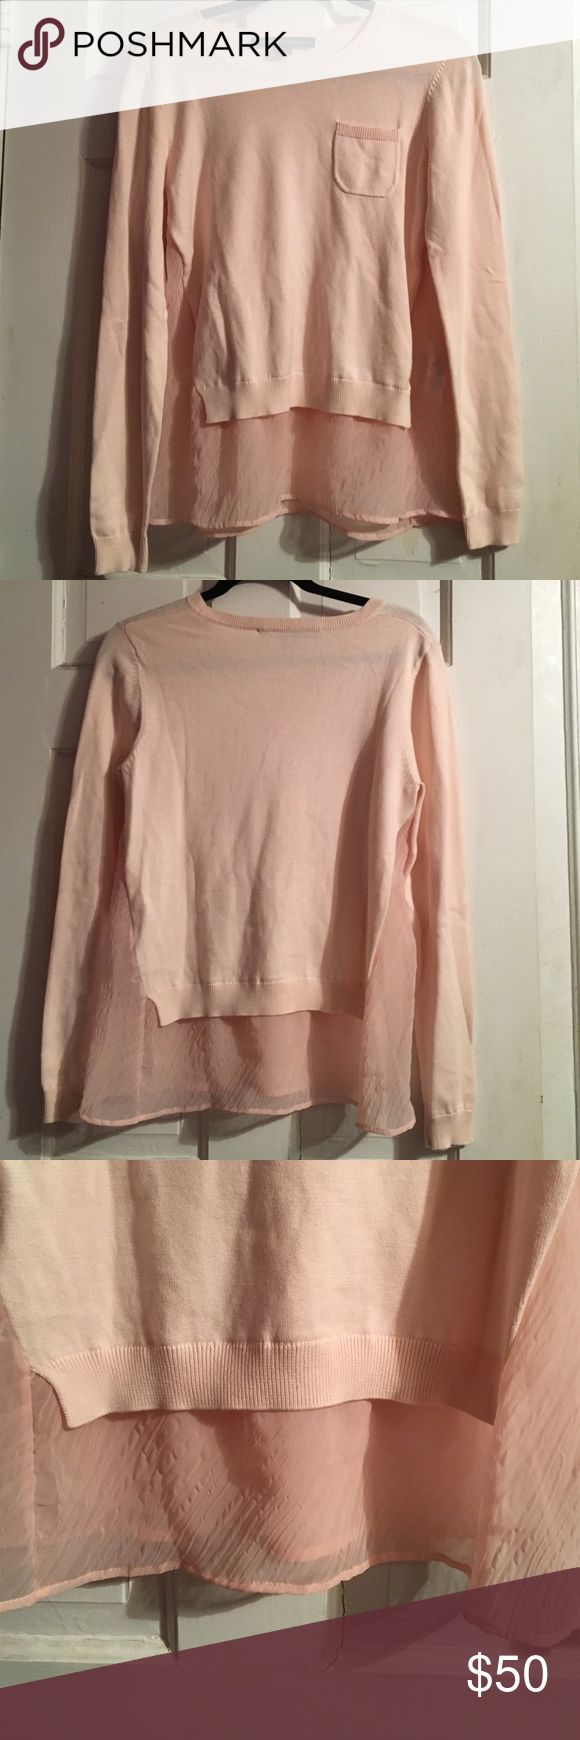 French Connection sweater Super cute light pink french connections sweater with silk looking trim French Connection Sweaters Crew & Scoop Necks